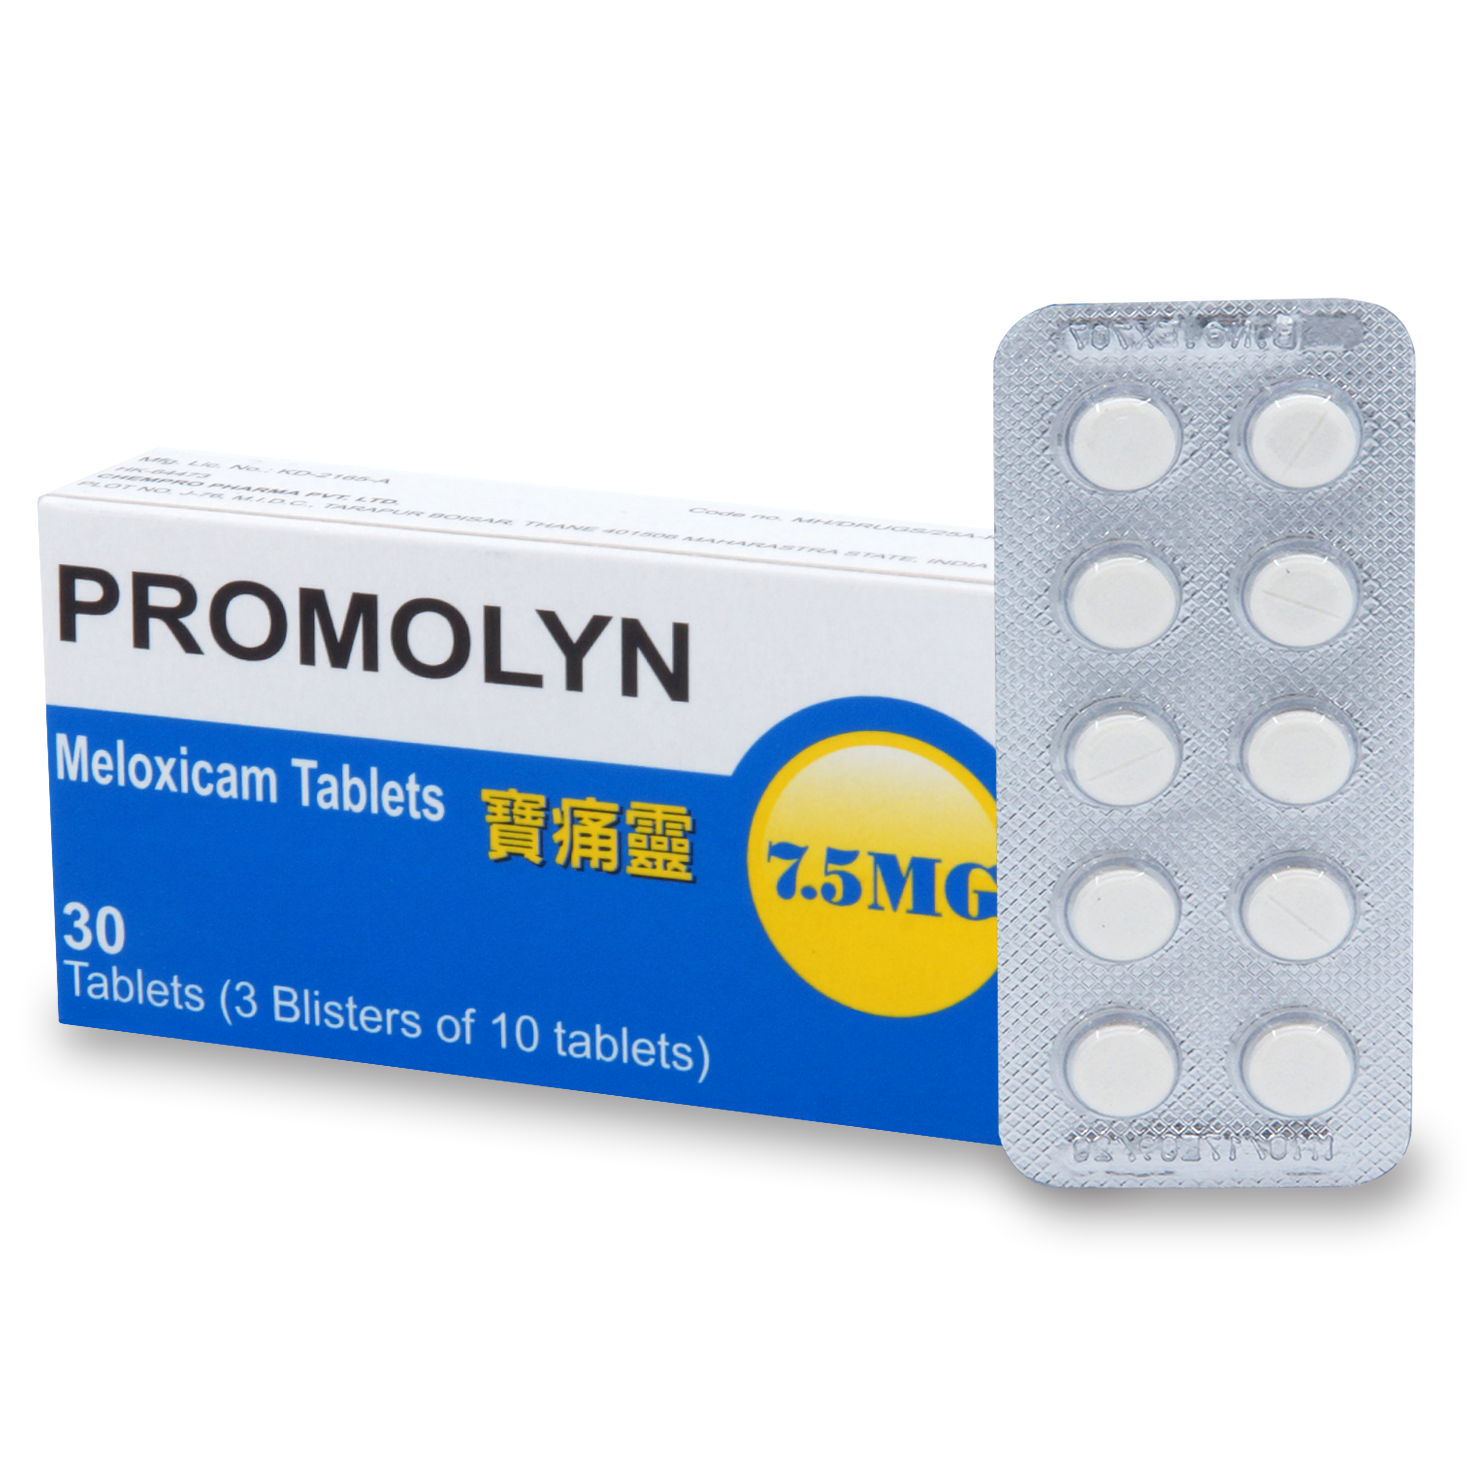 PROMOLYN TABLETS 7.5MG